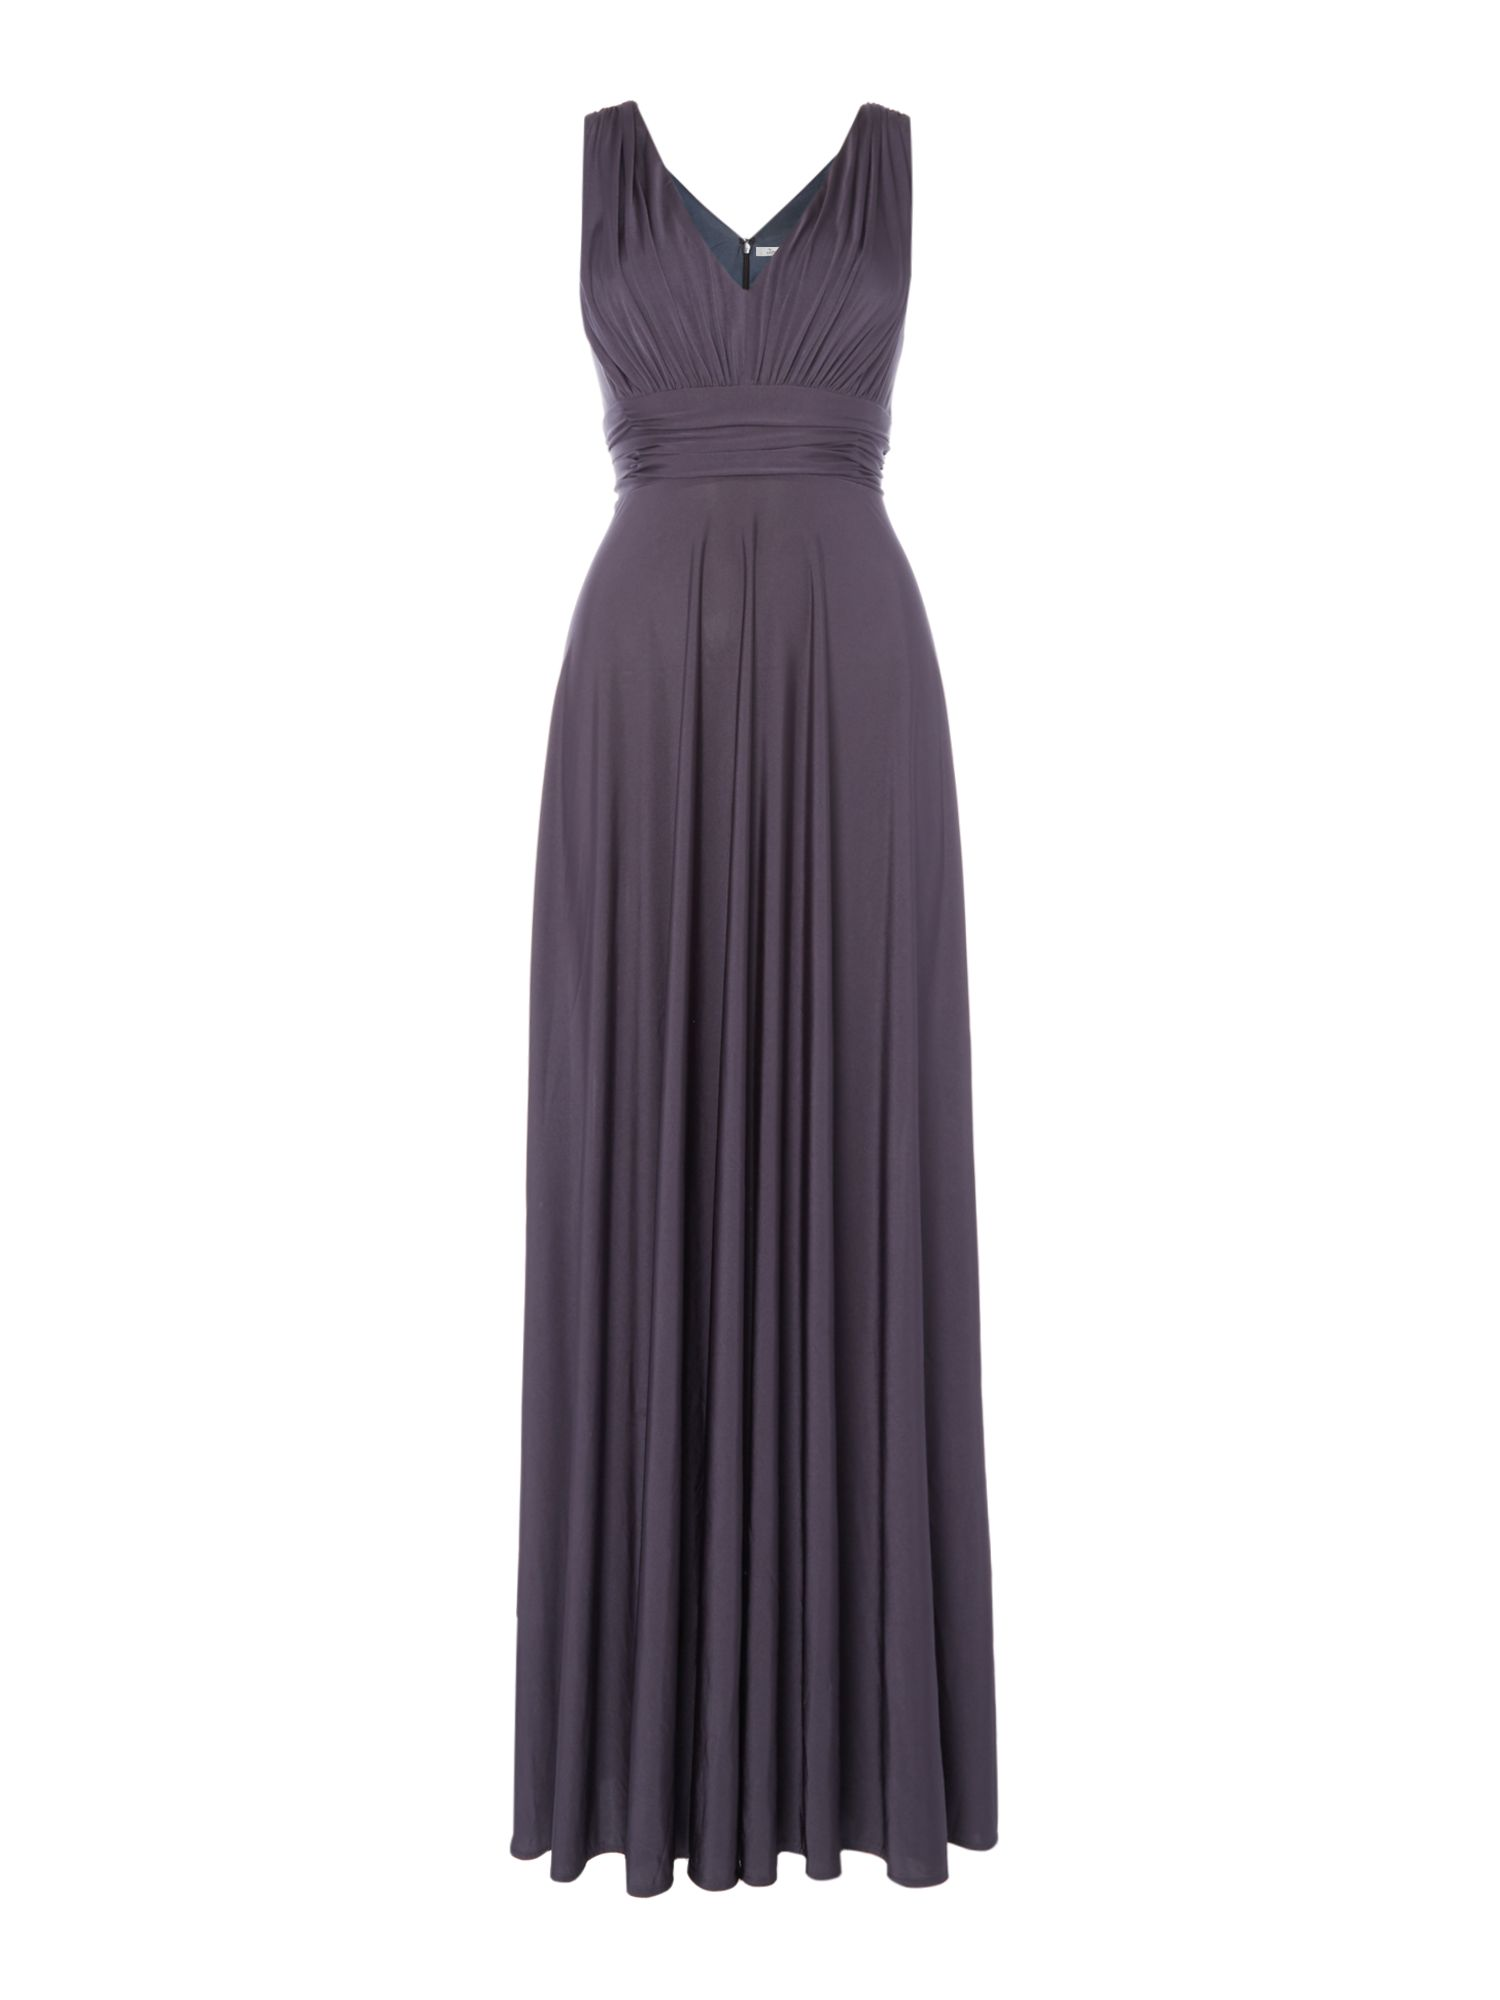 ISSA Olivia Deep V Maxi Dress, Silver